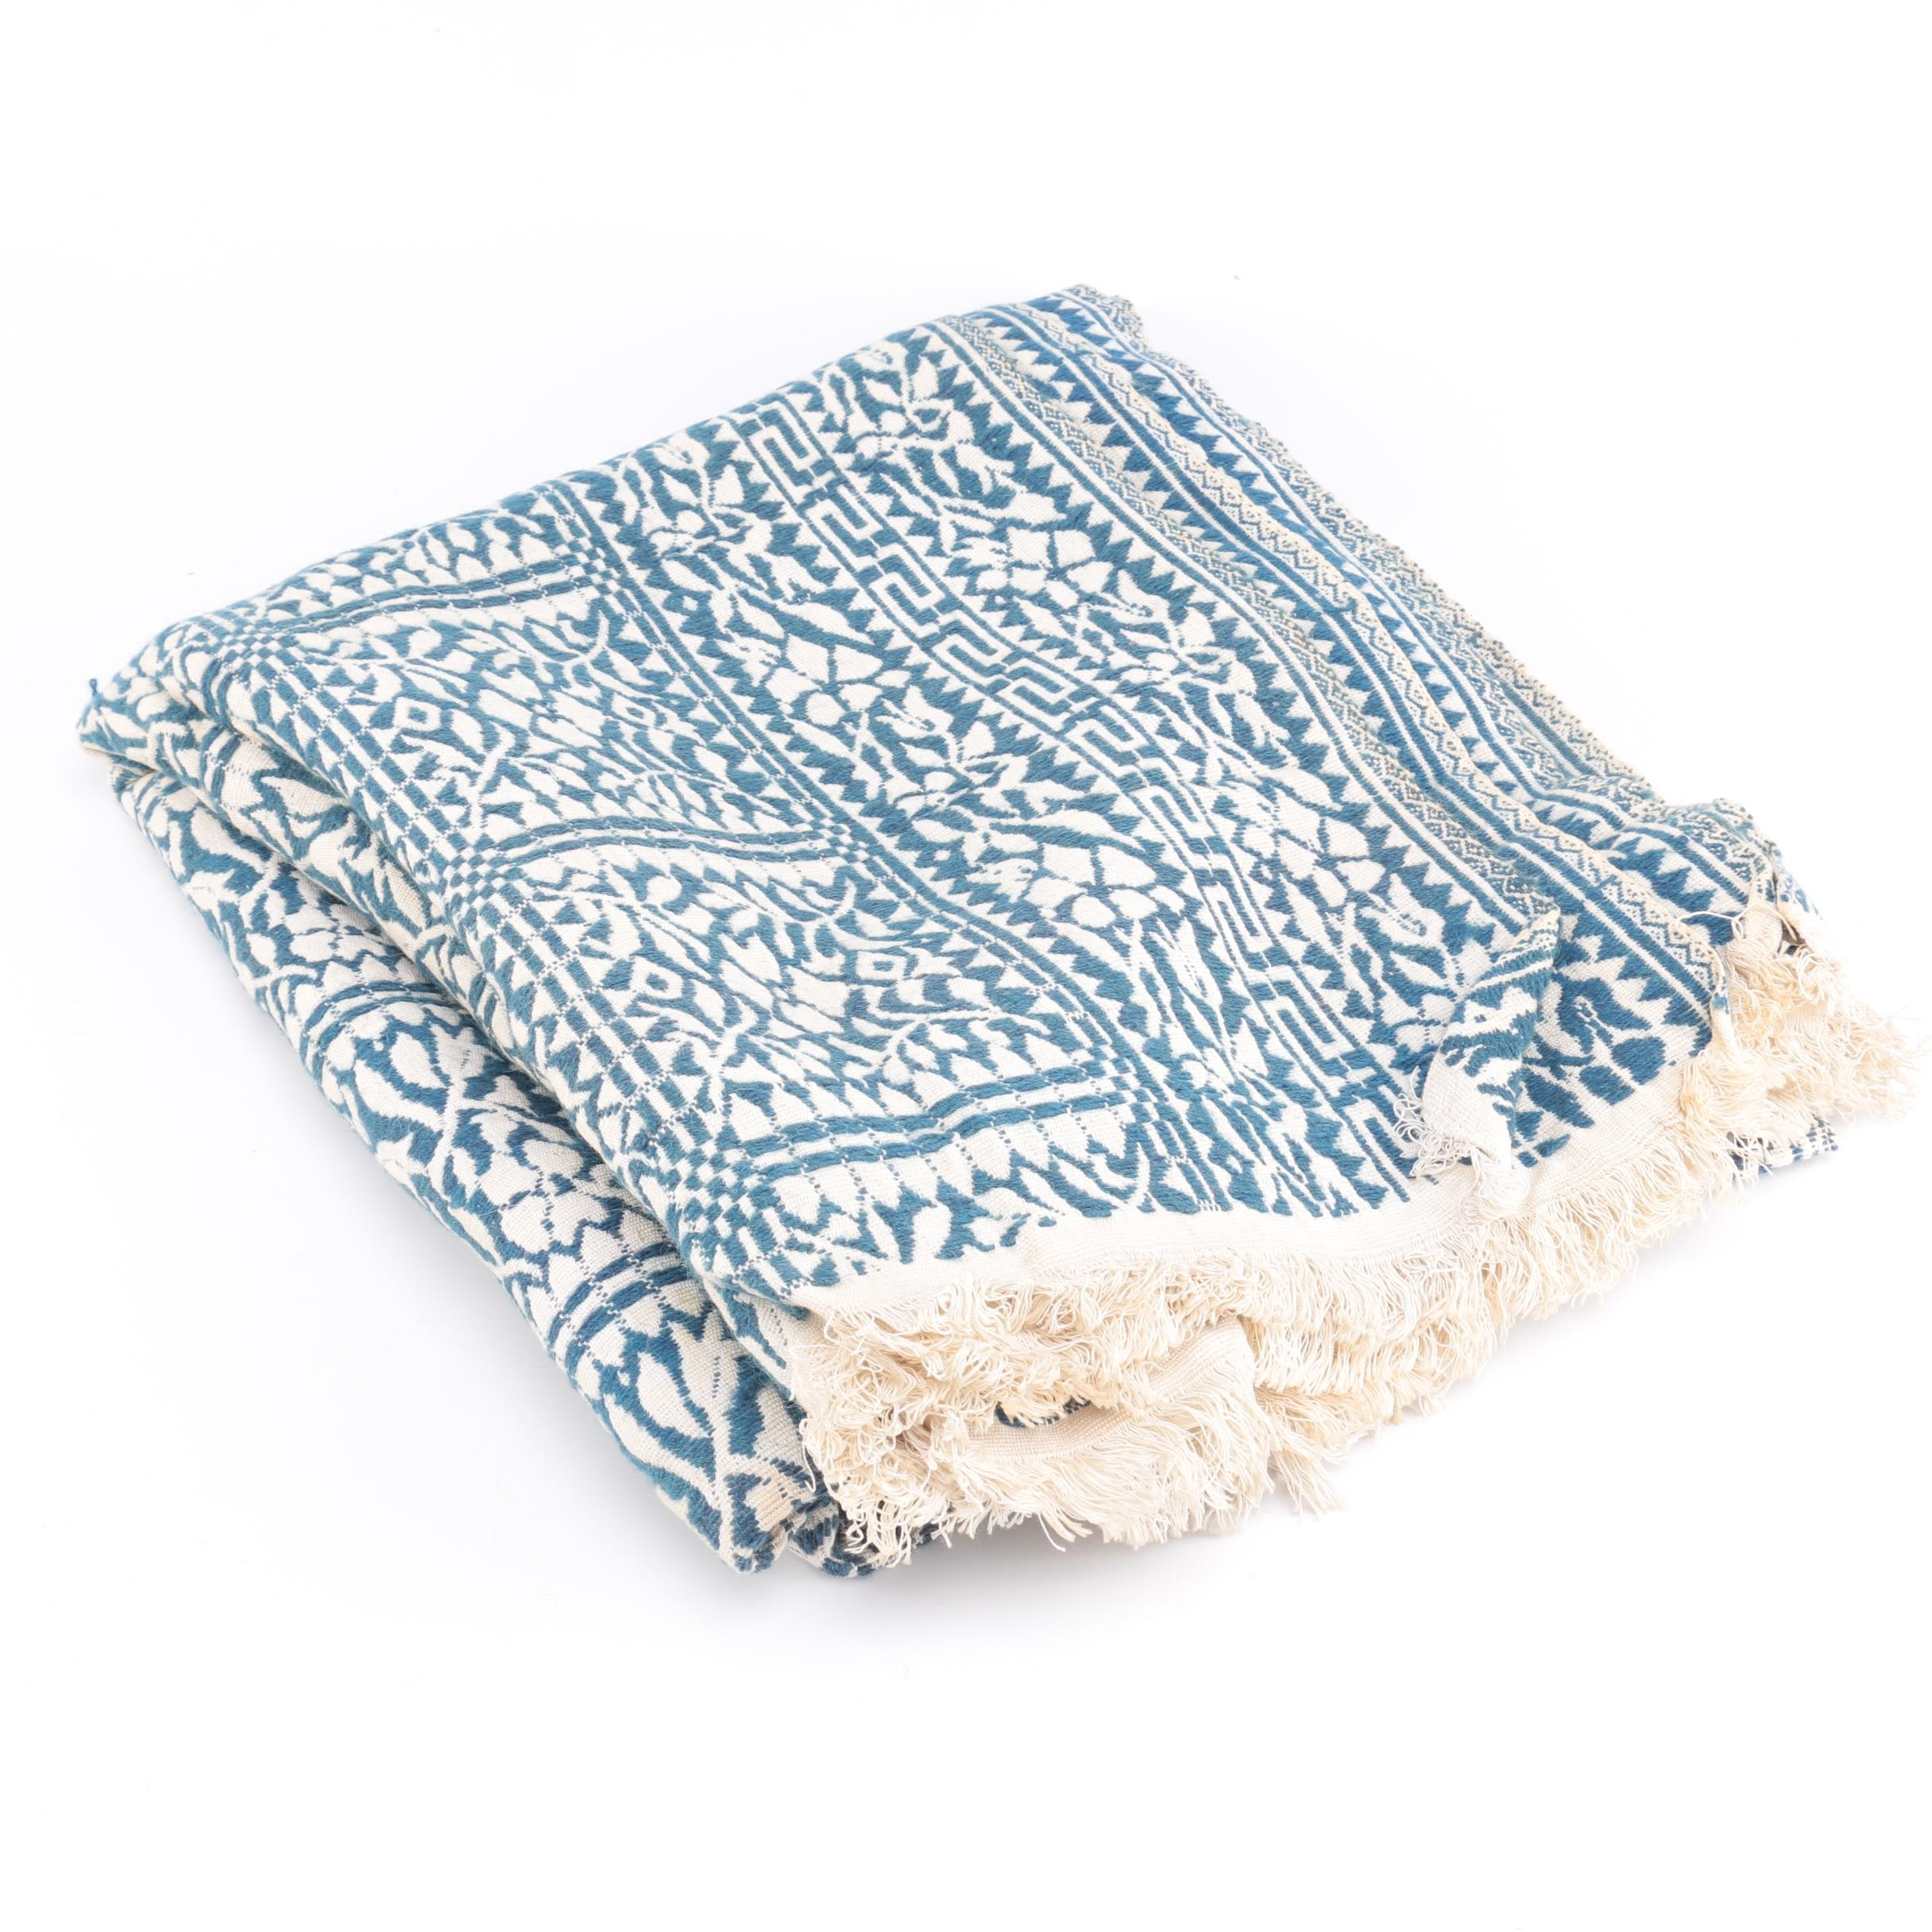 Classic Blue and White Batik Throw Blanket